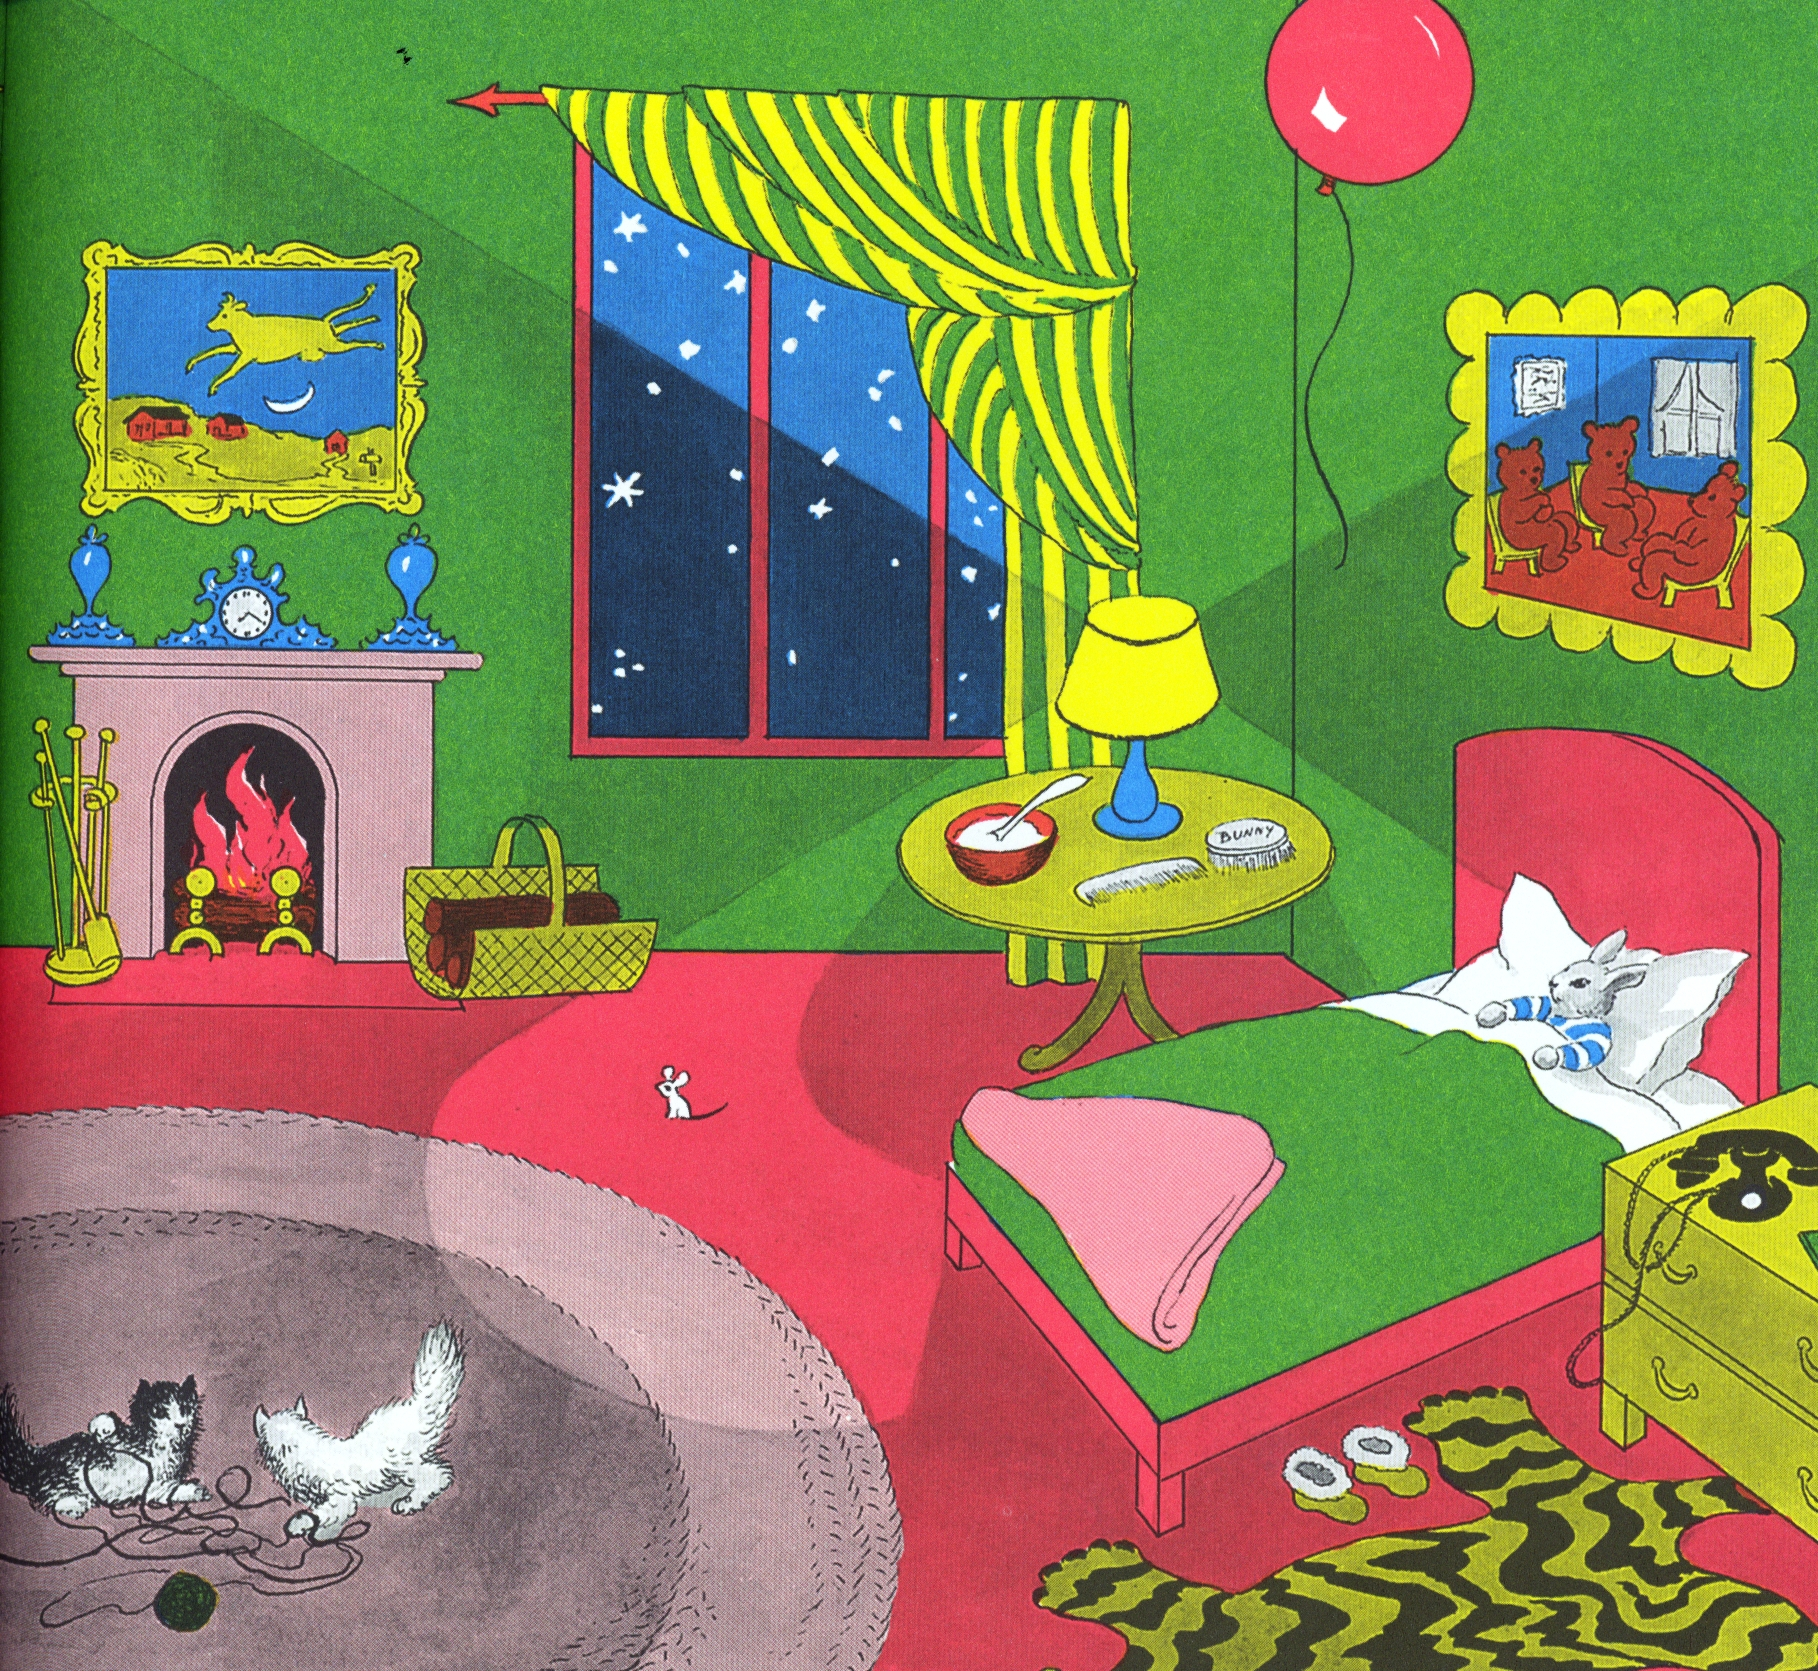 Children's Literature Book Reviews / Goodnight Moon